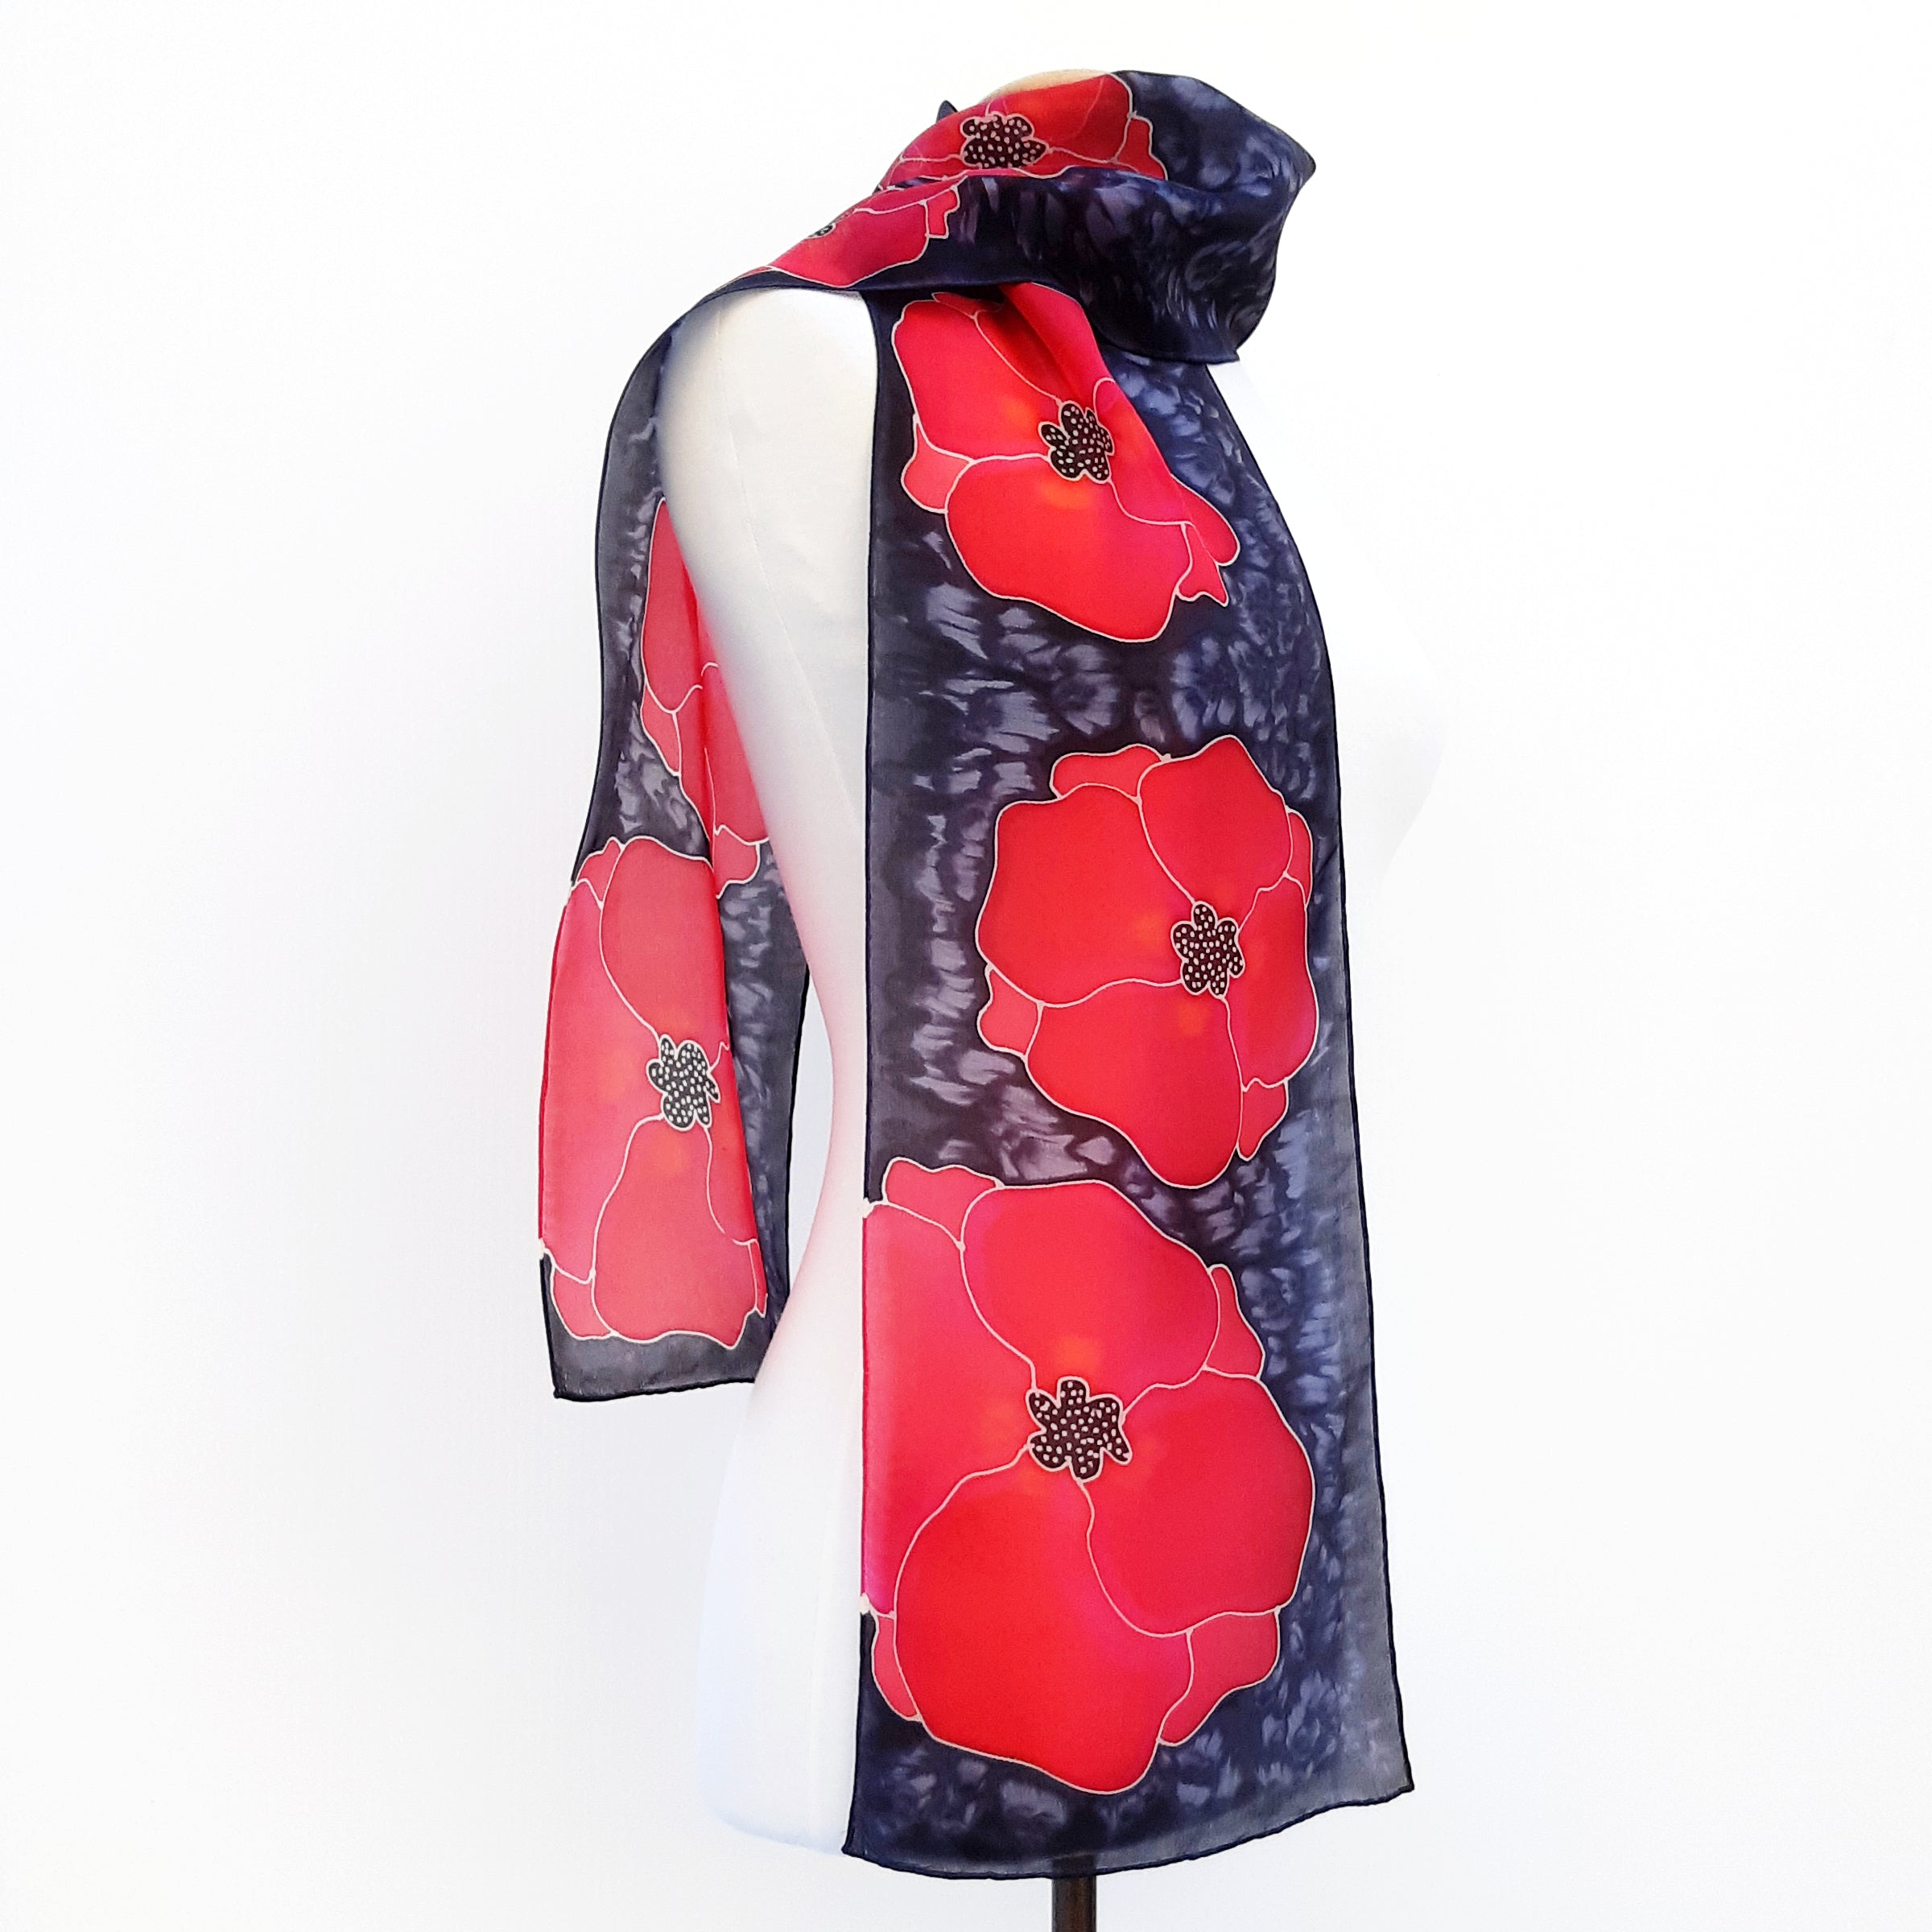 Painted silk remembrance day poppy scarf